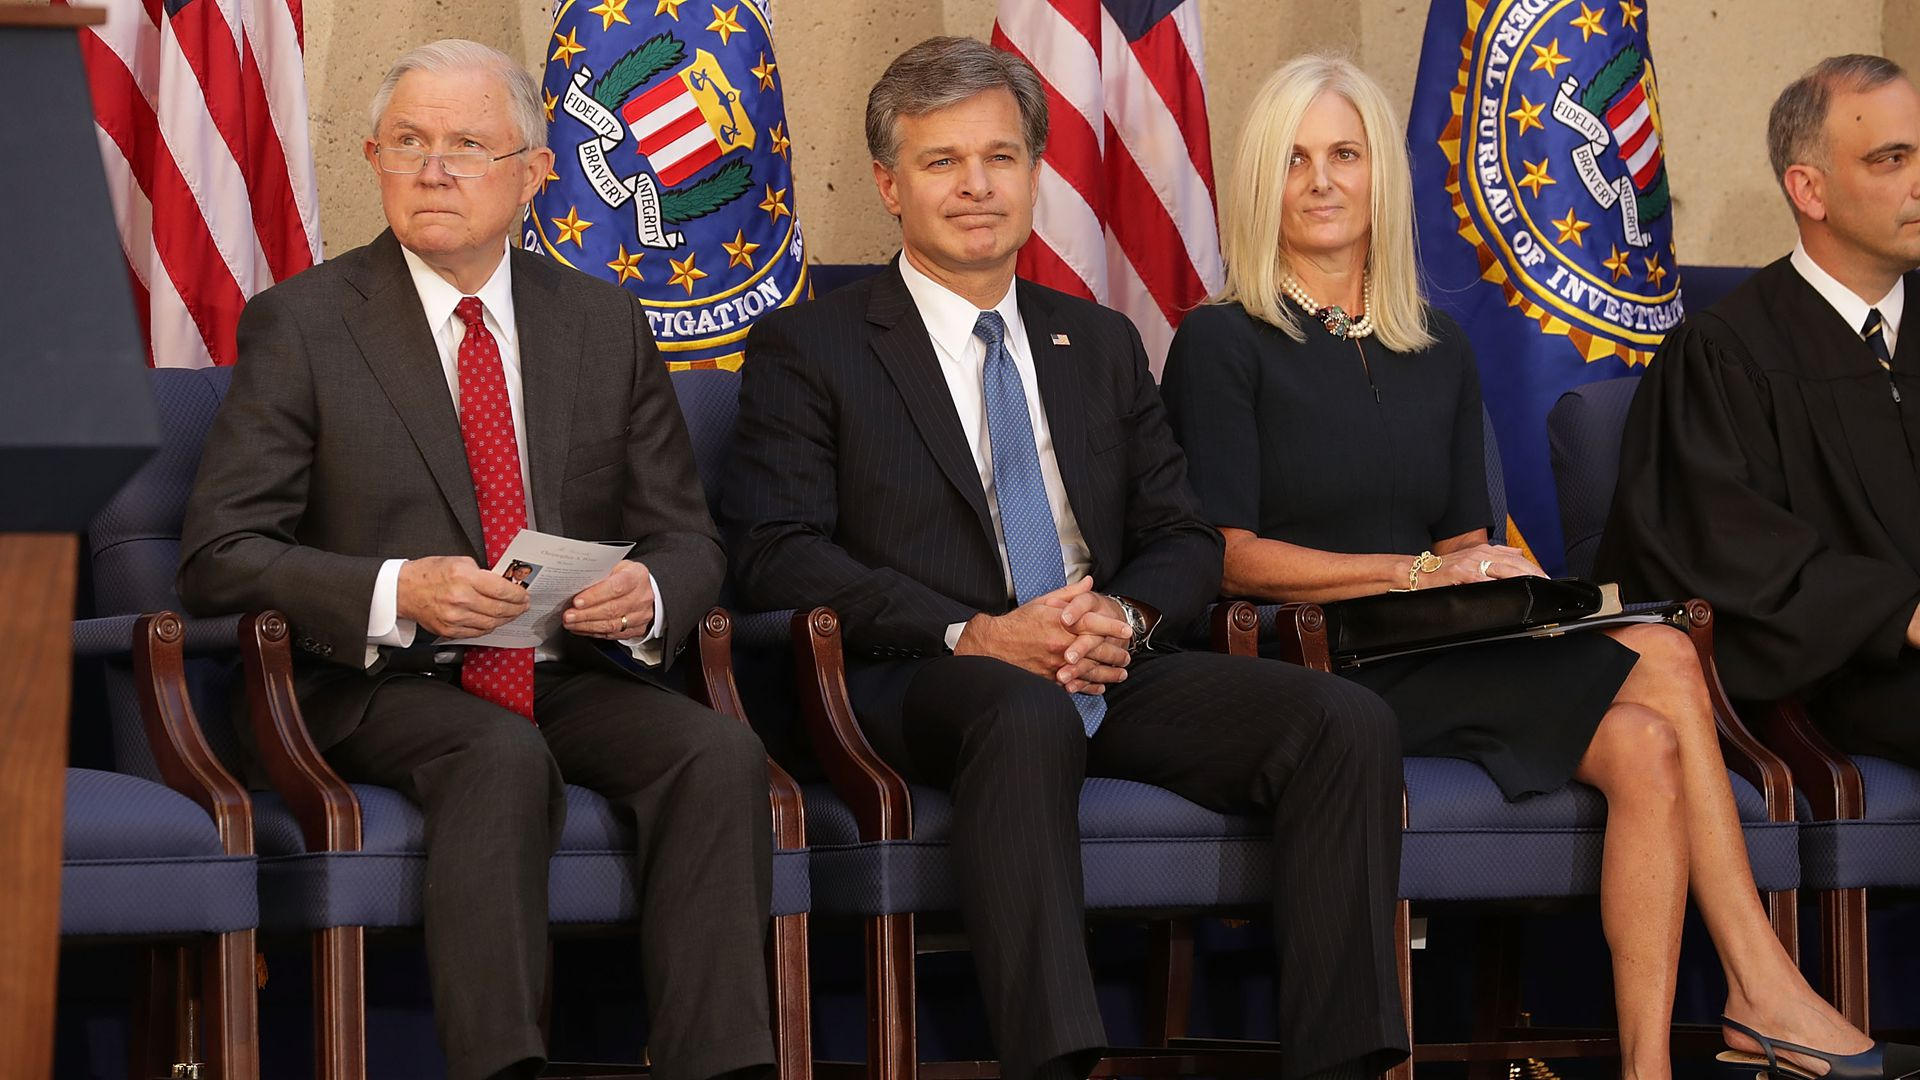 Wray threatened to resign because of pressure from Trump, Sessions